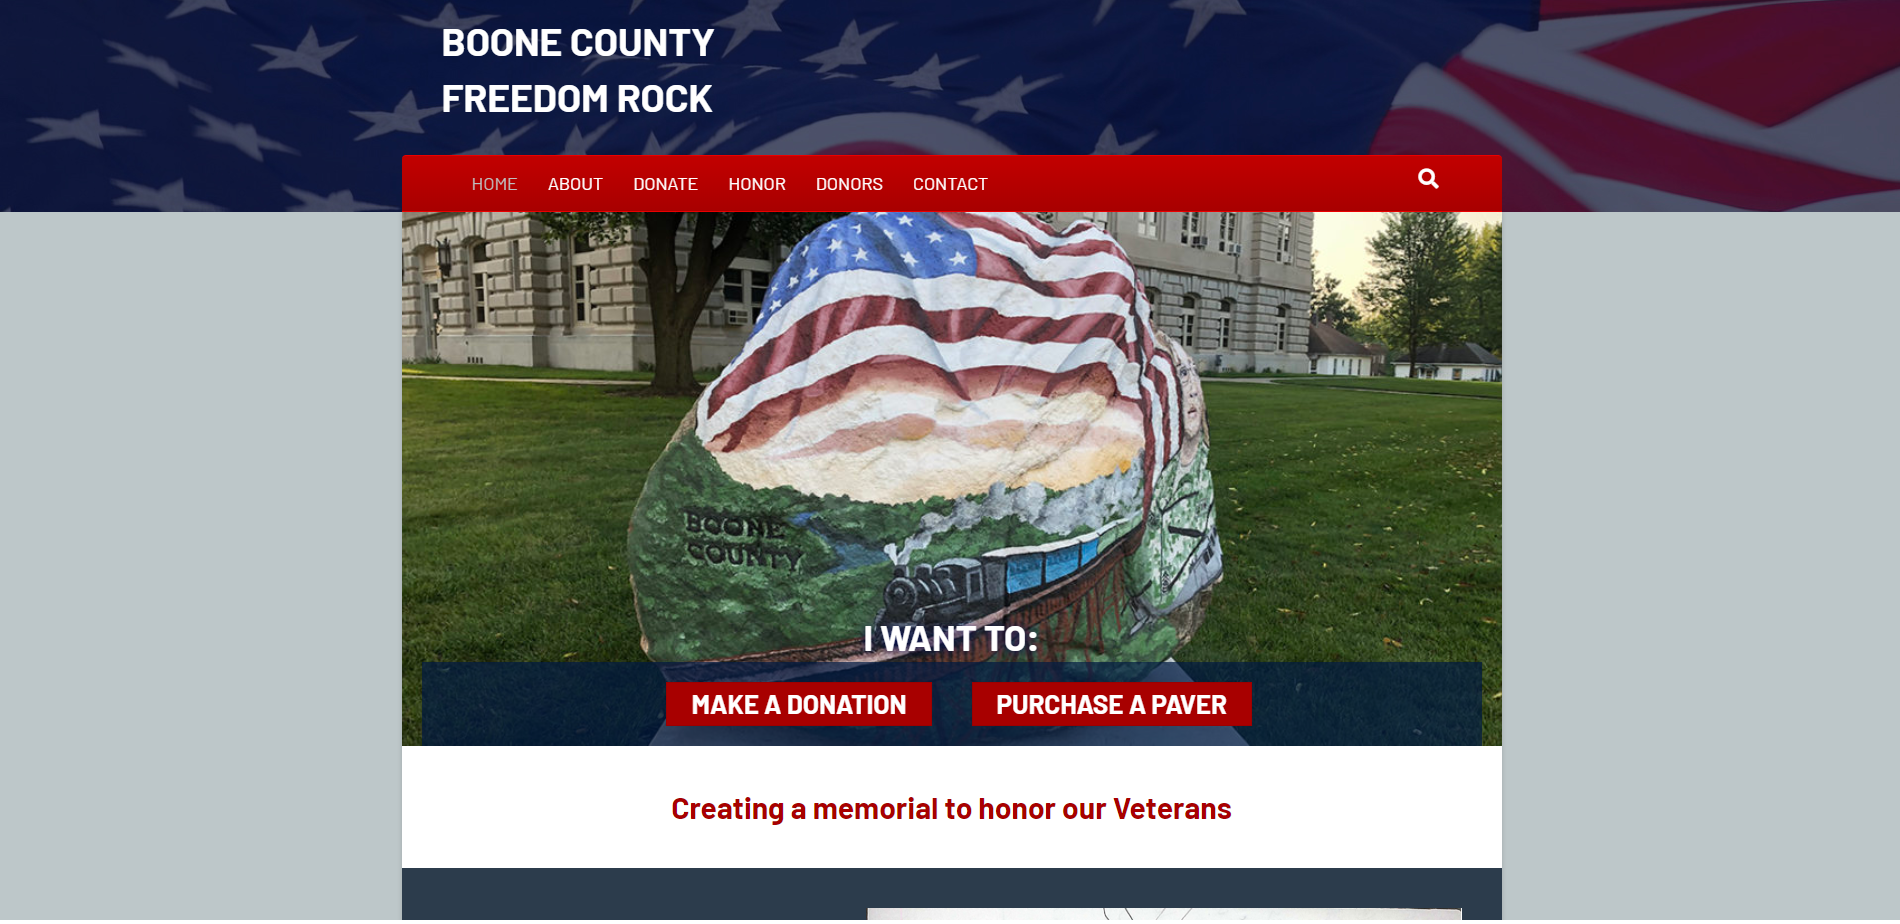 Boone County Freedom Rock - Website